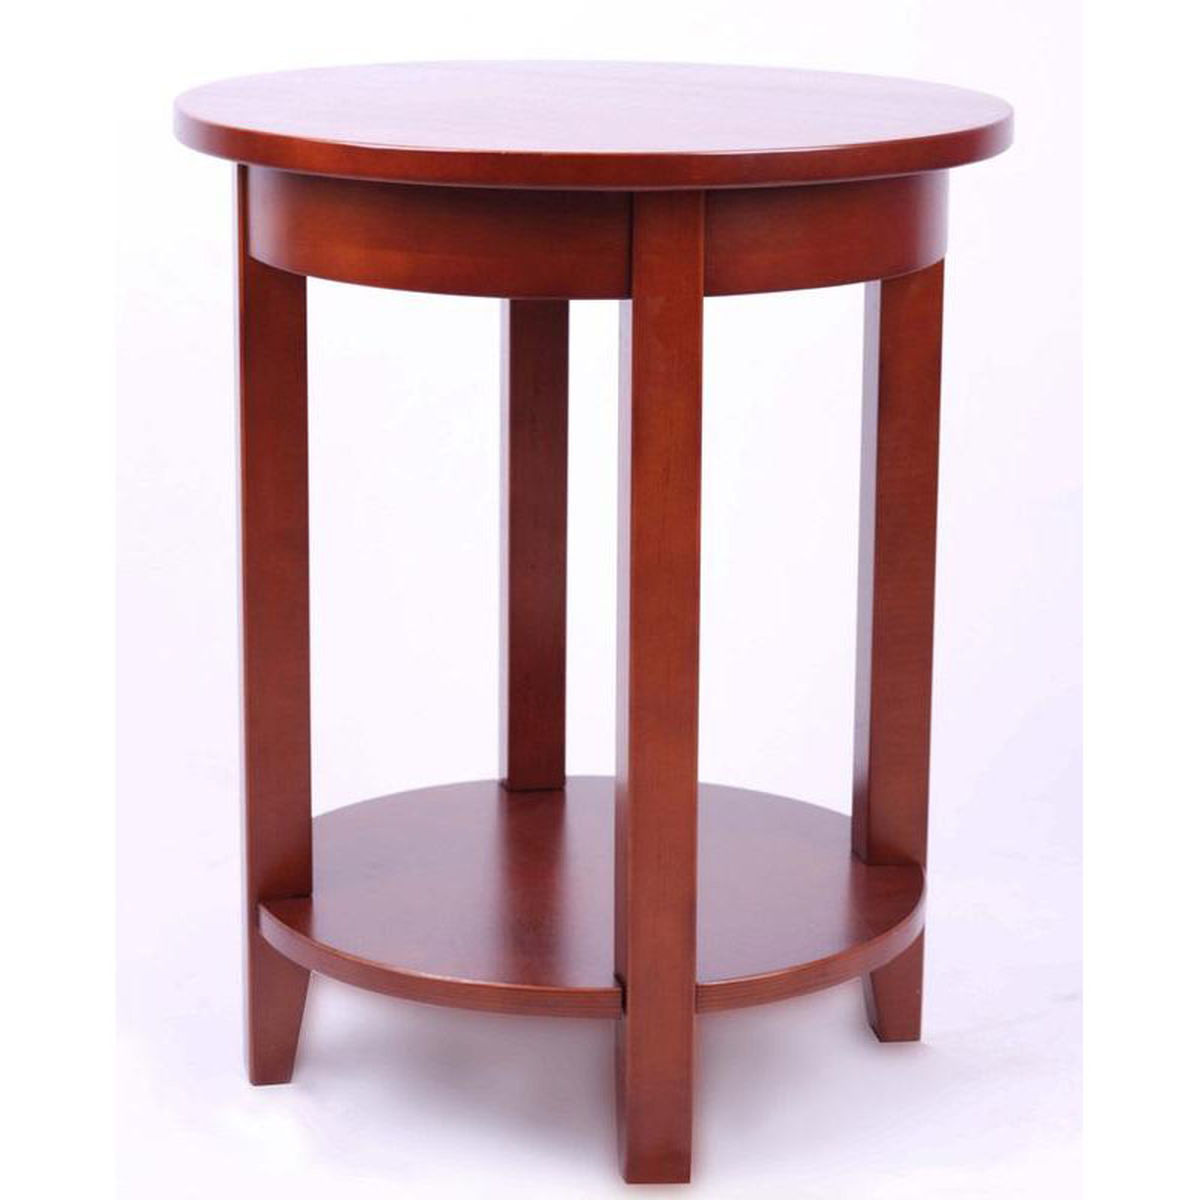 cherry round accent table bizchair bolton furniture bol main wood our shaker cottage wooden diameter with storage shelf wall mounted console outdoor bench nate berkus side dark